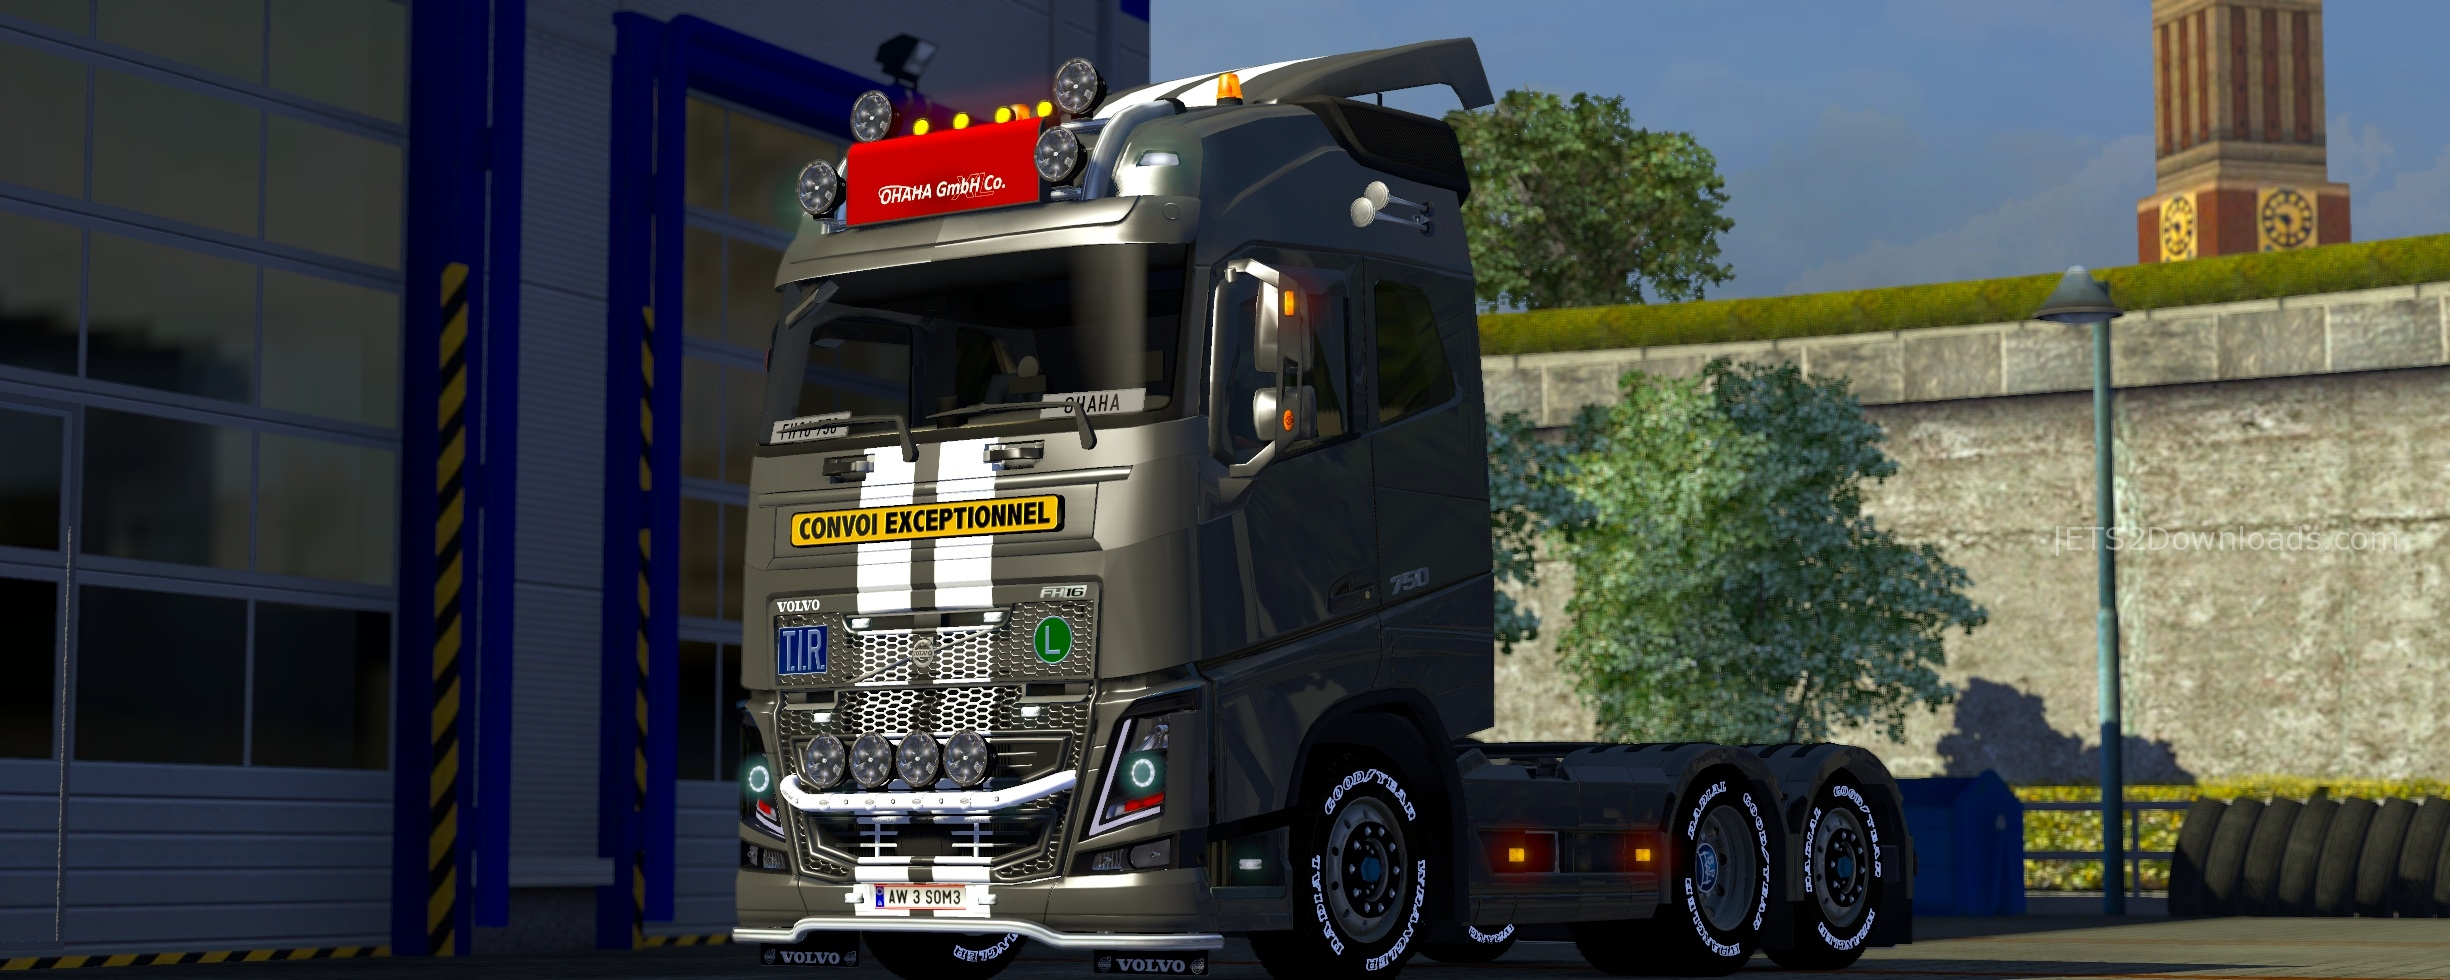 Volvo Fh 2013 By Ohaha V19 6 Ets2 Mods